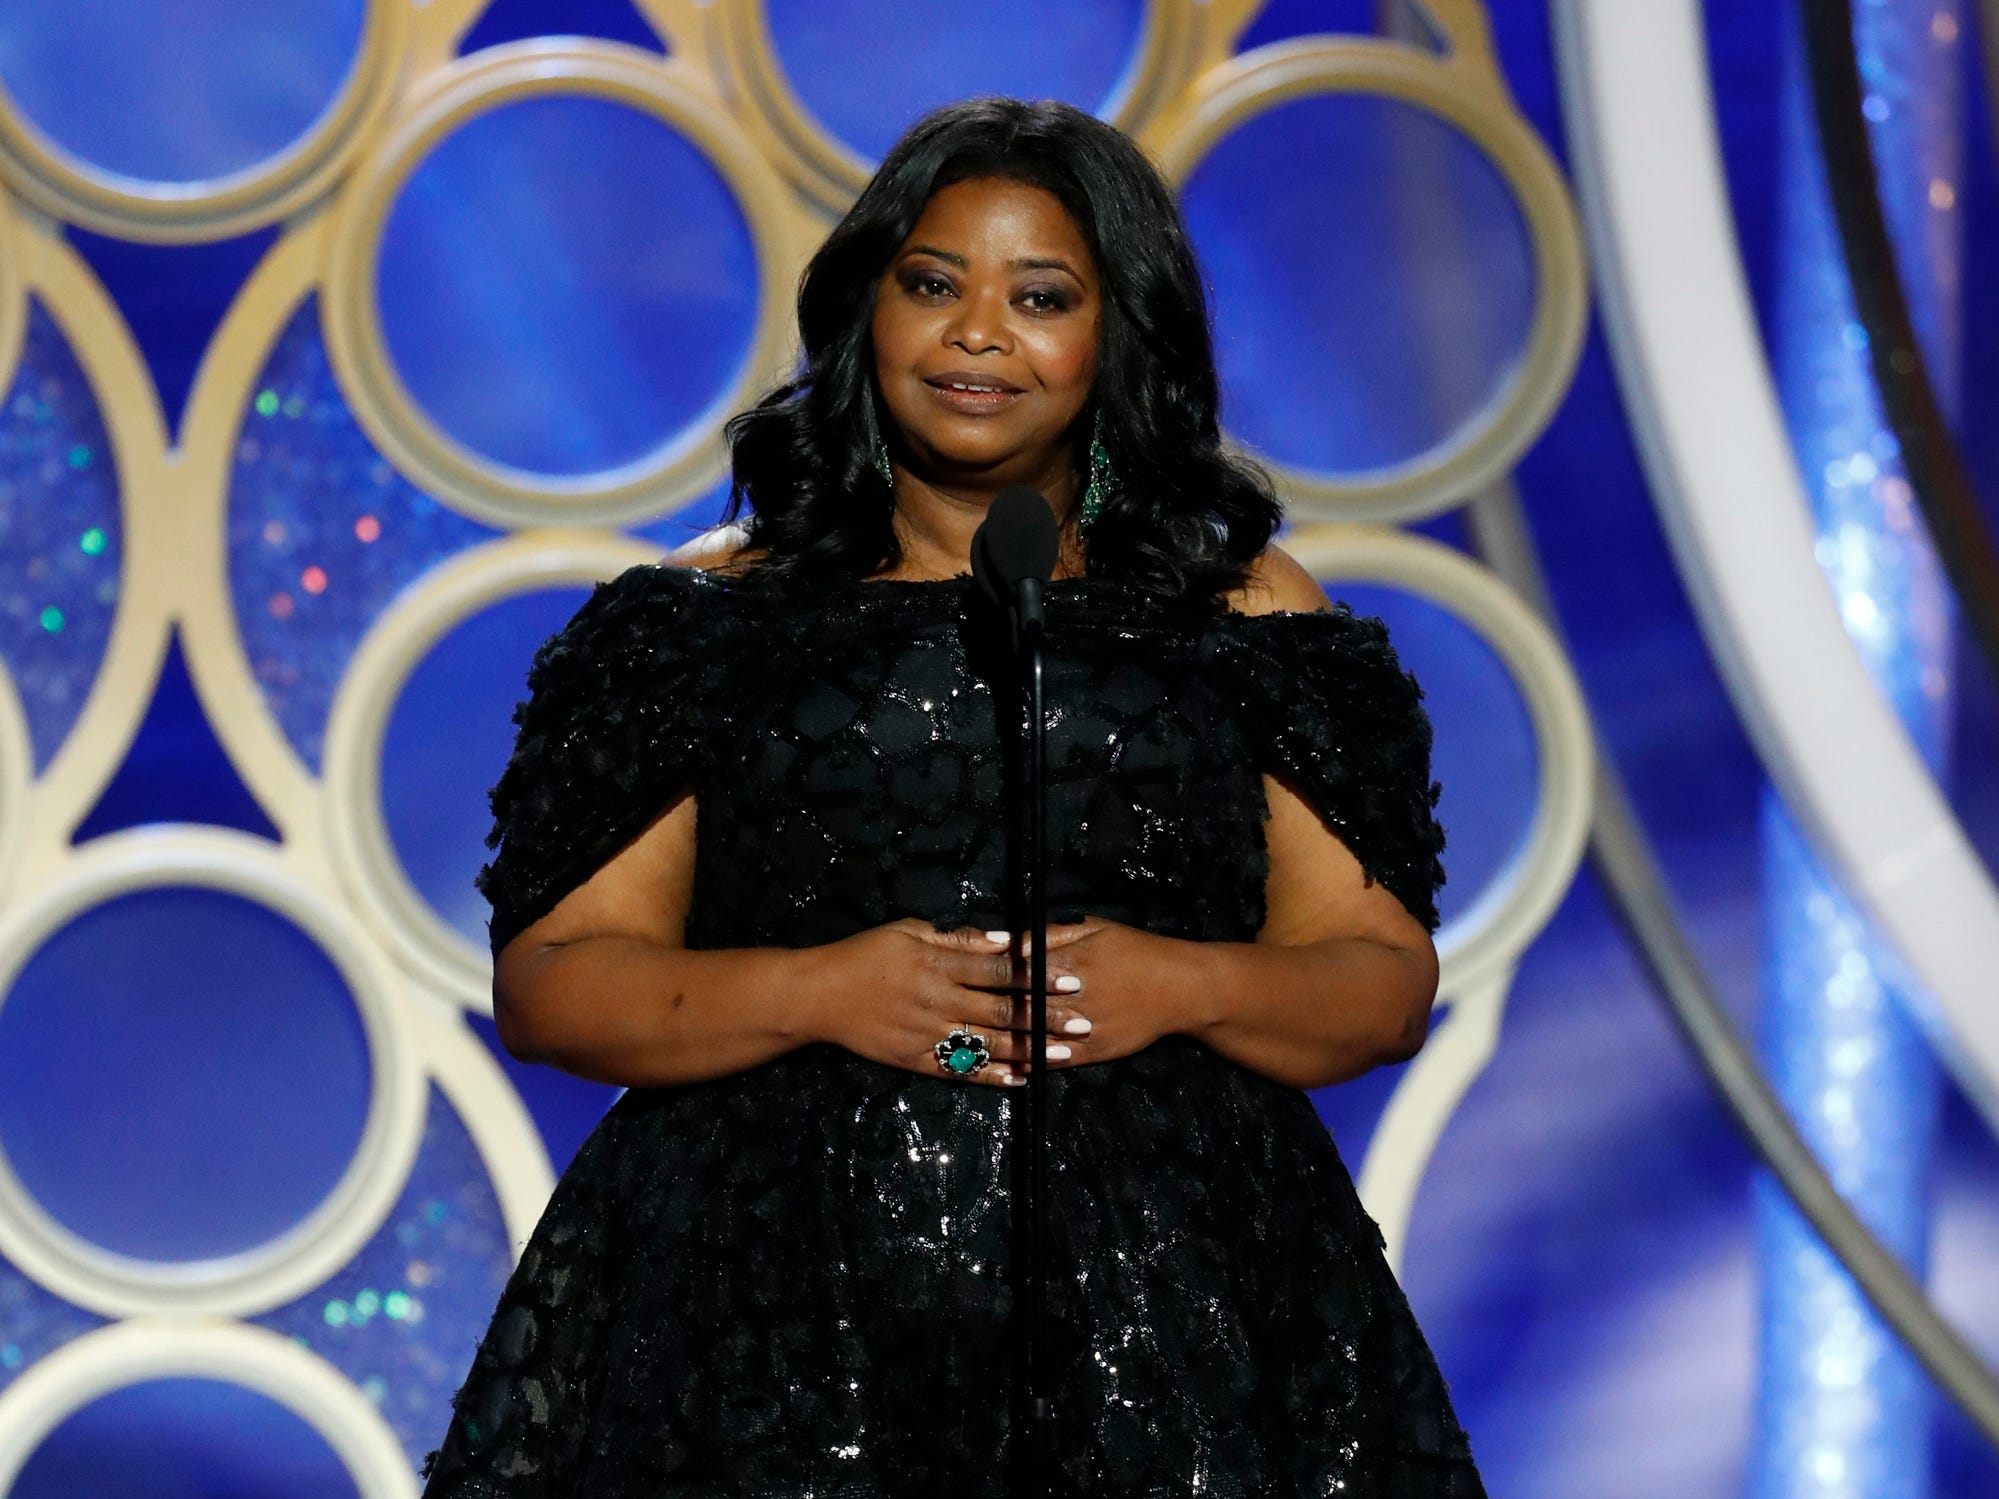 Octavia Spencer speaks on stage during the 76th Golden Globe Awards.